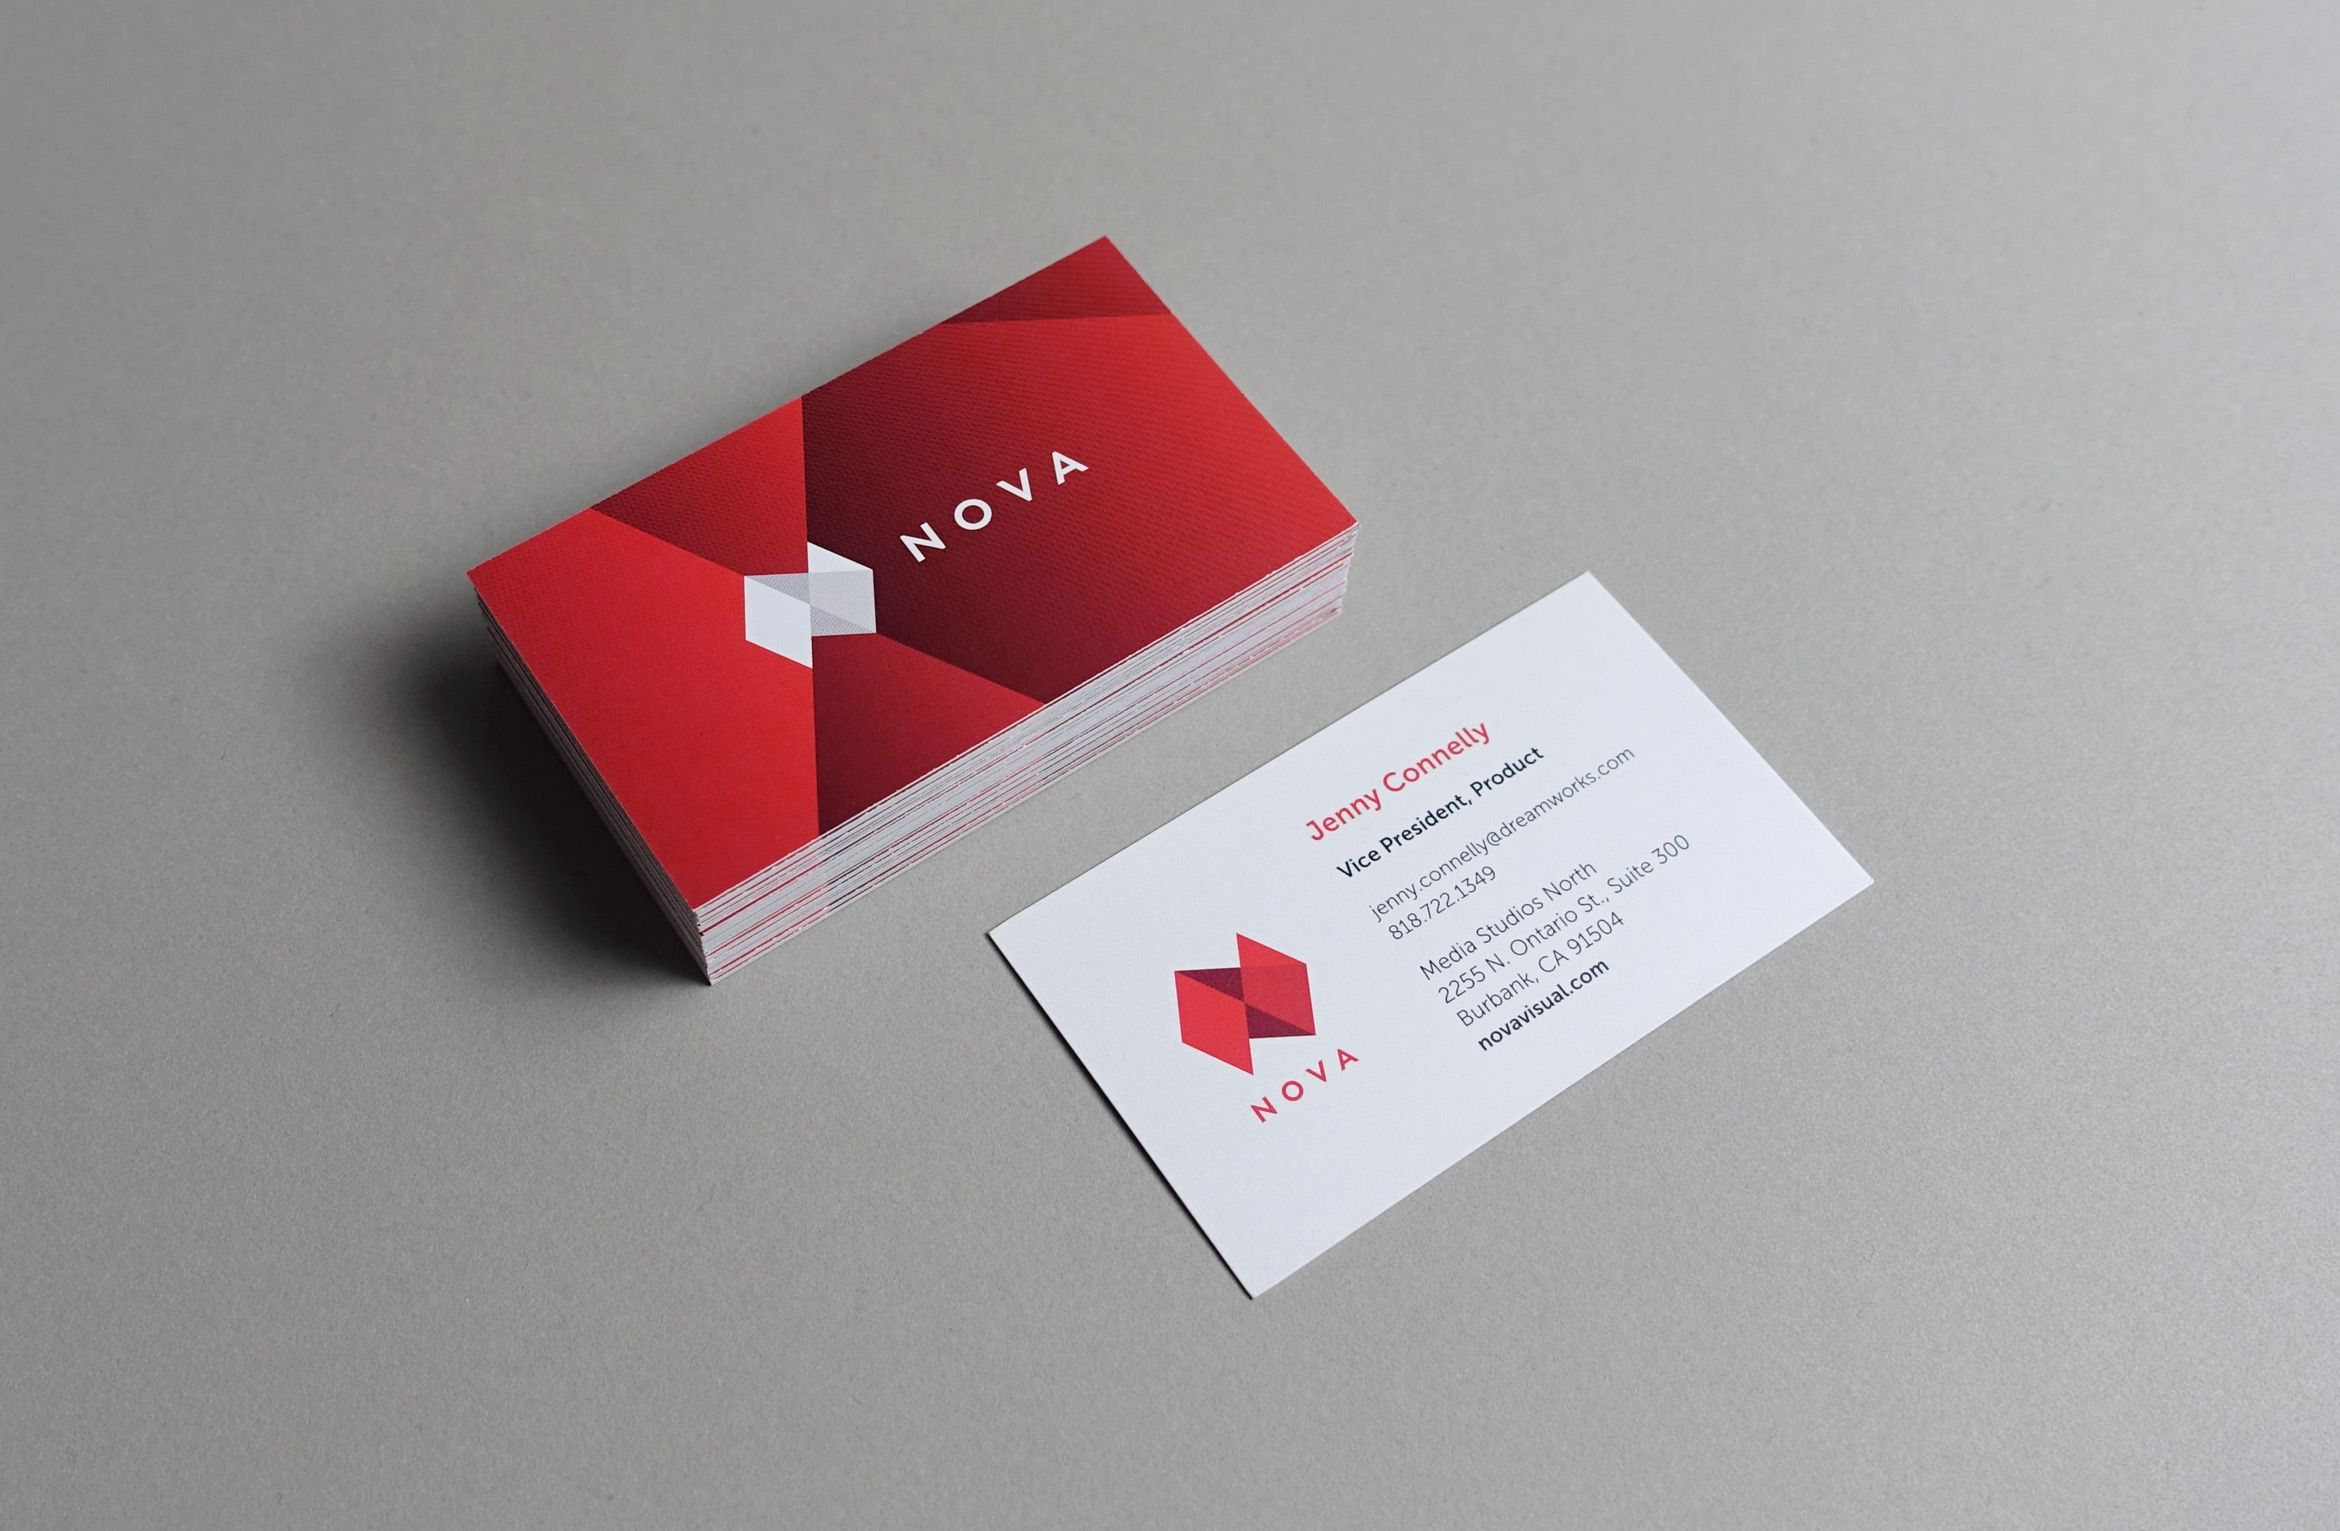 Trf nova brand identity website design business card trf nova brand identity website design reheart Images